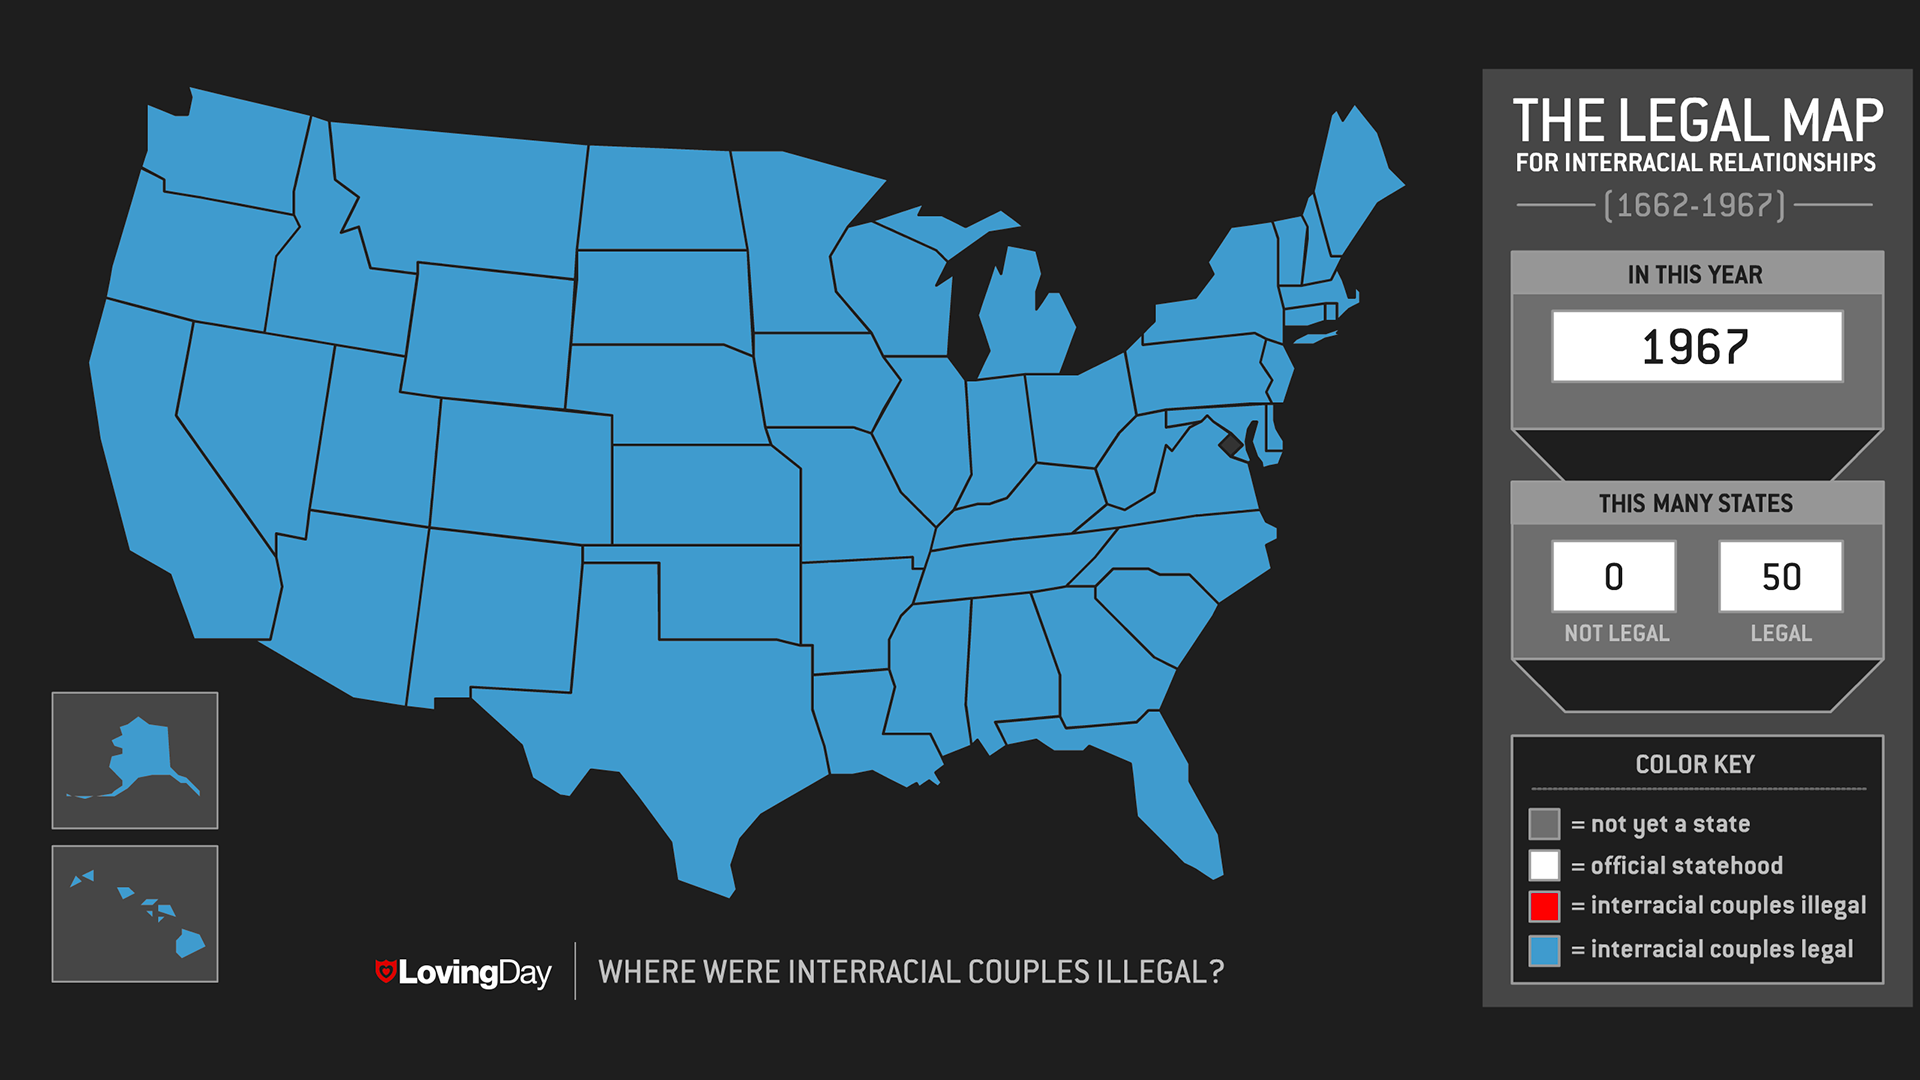 Loving Day: where were interracial couples illegal? The Legal Map for interracial relationships (1662-1967). In this year: 1967. This many states: 0 not legal, 50 legal.